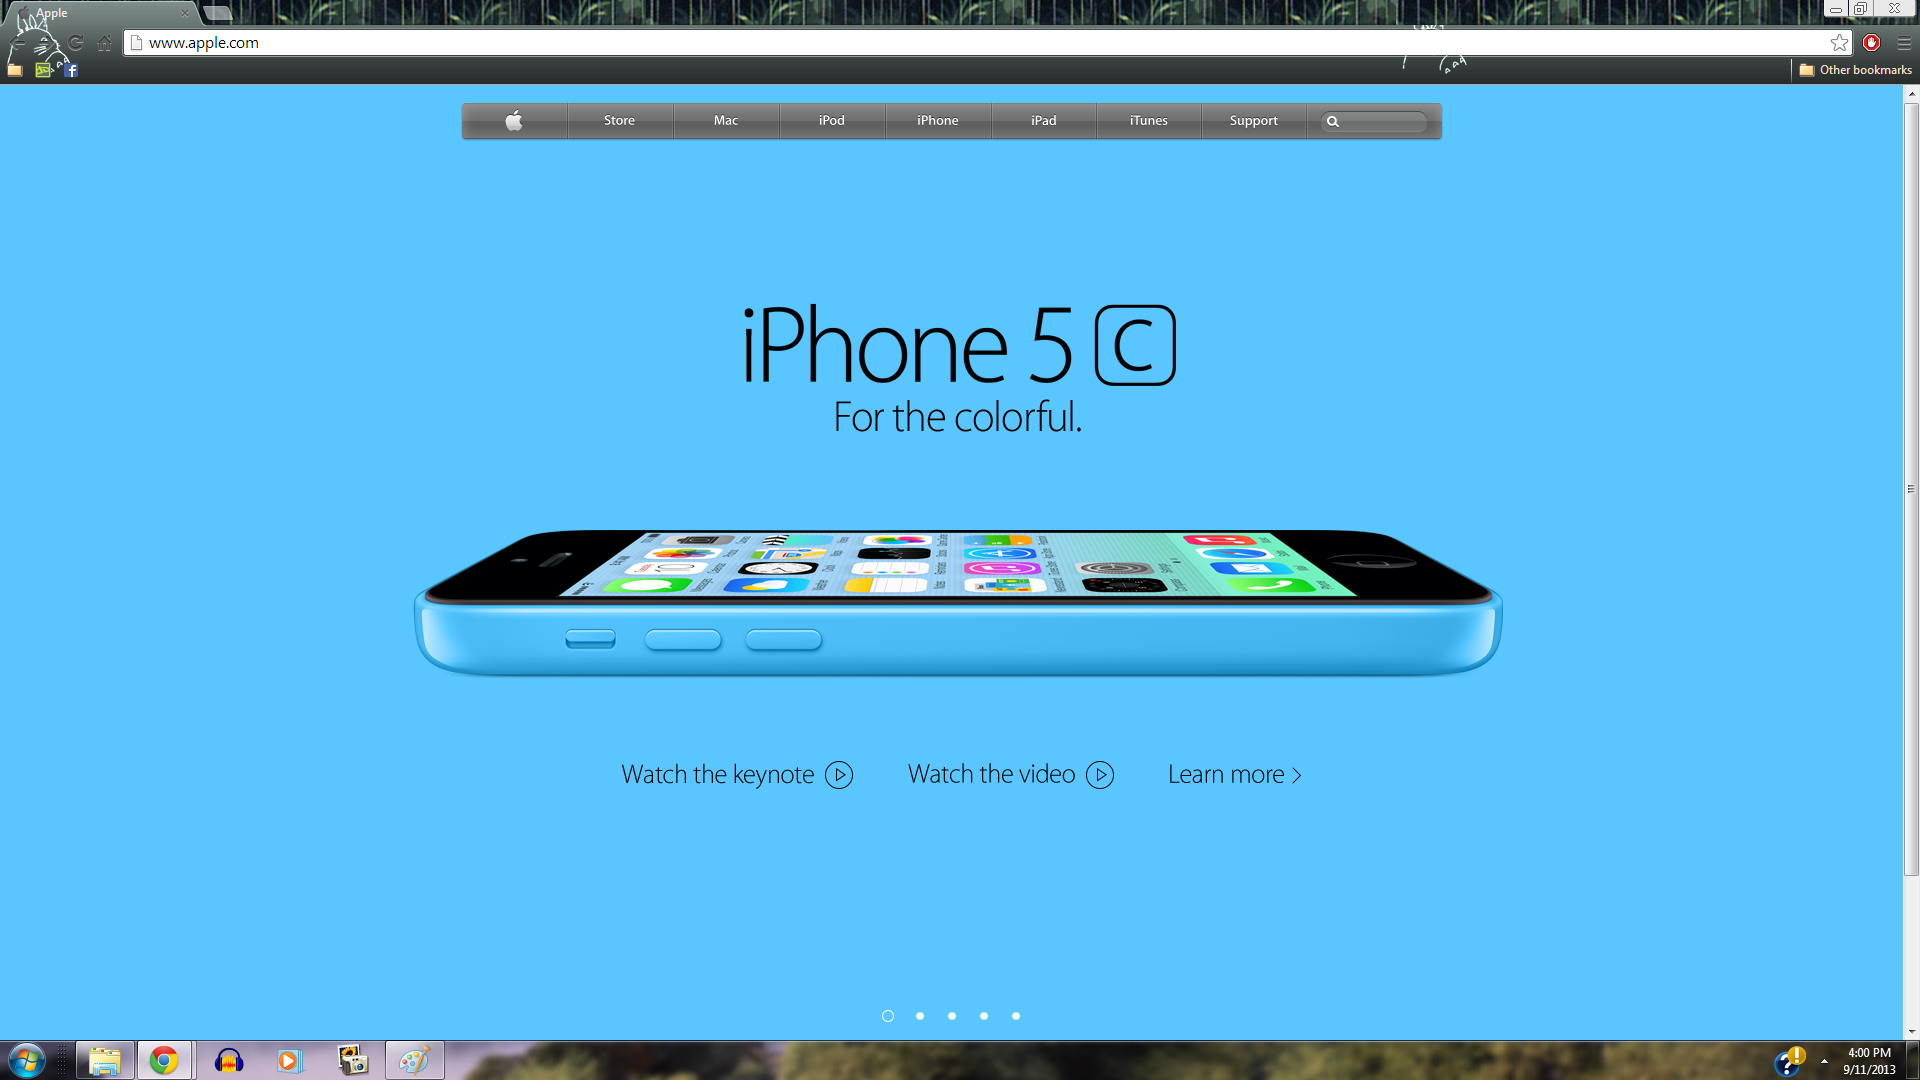 iPhone 5c Blue mela, apple Homepage